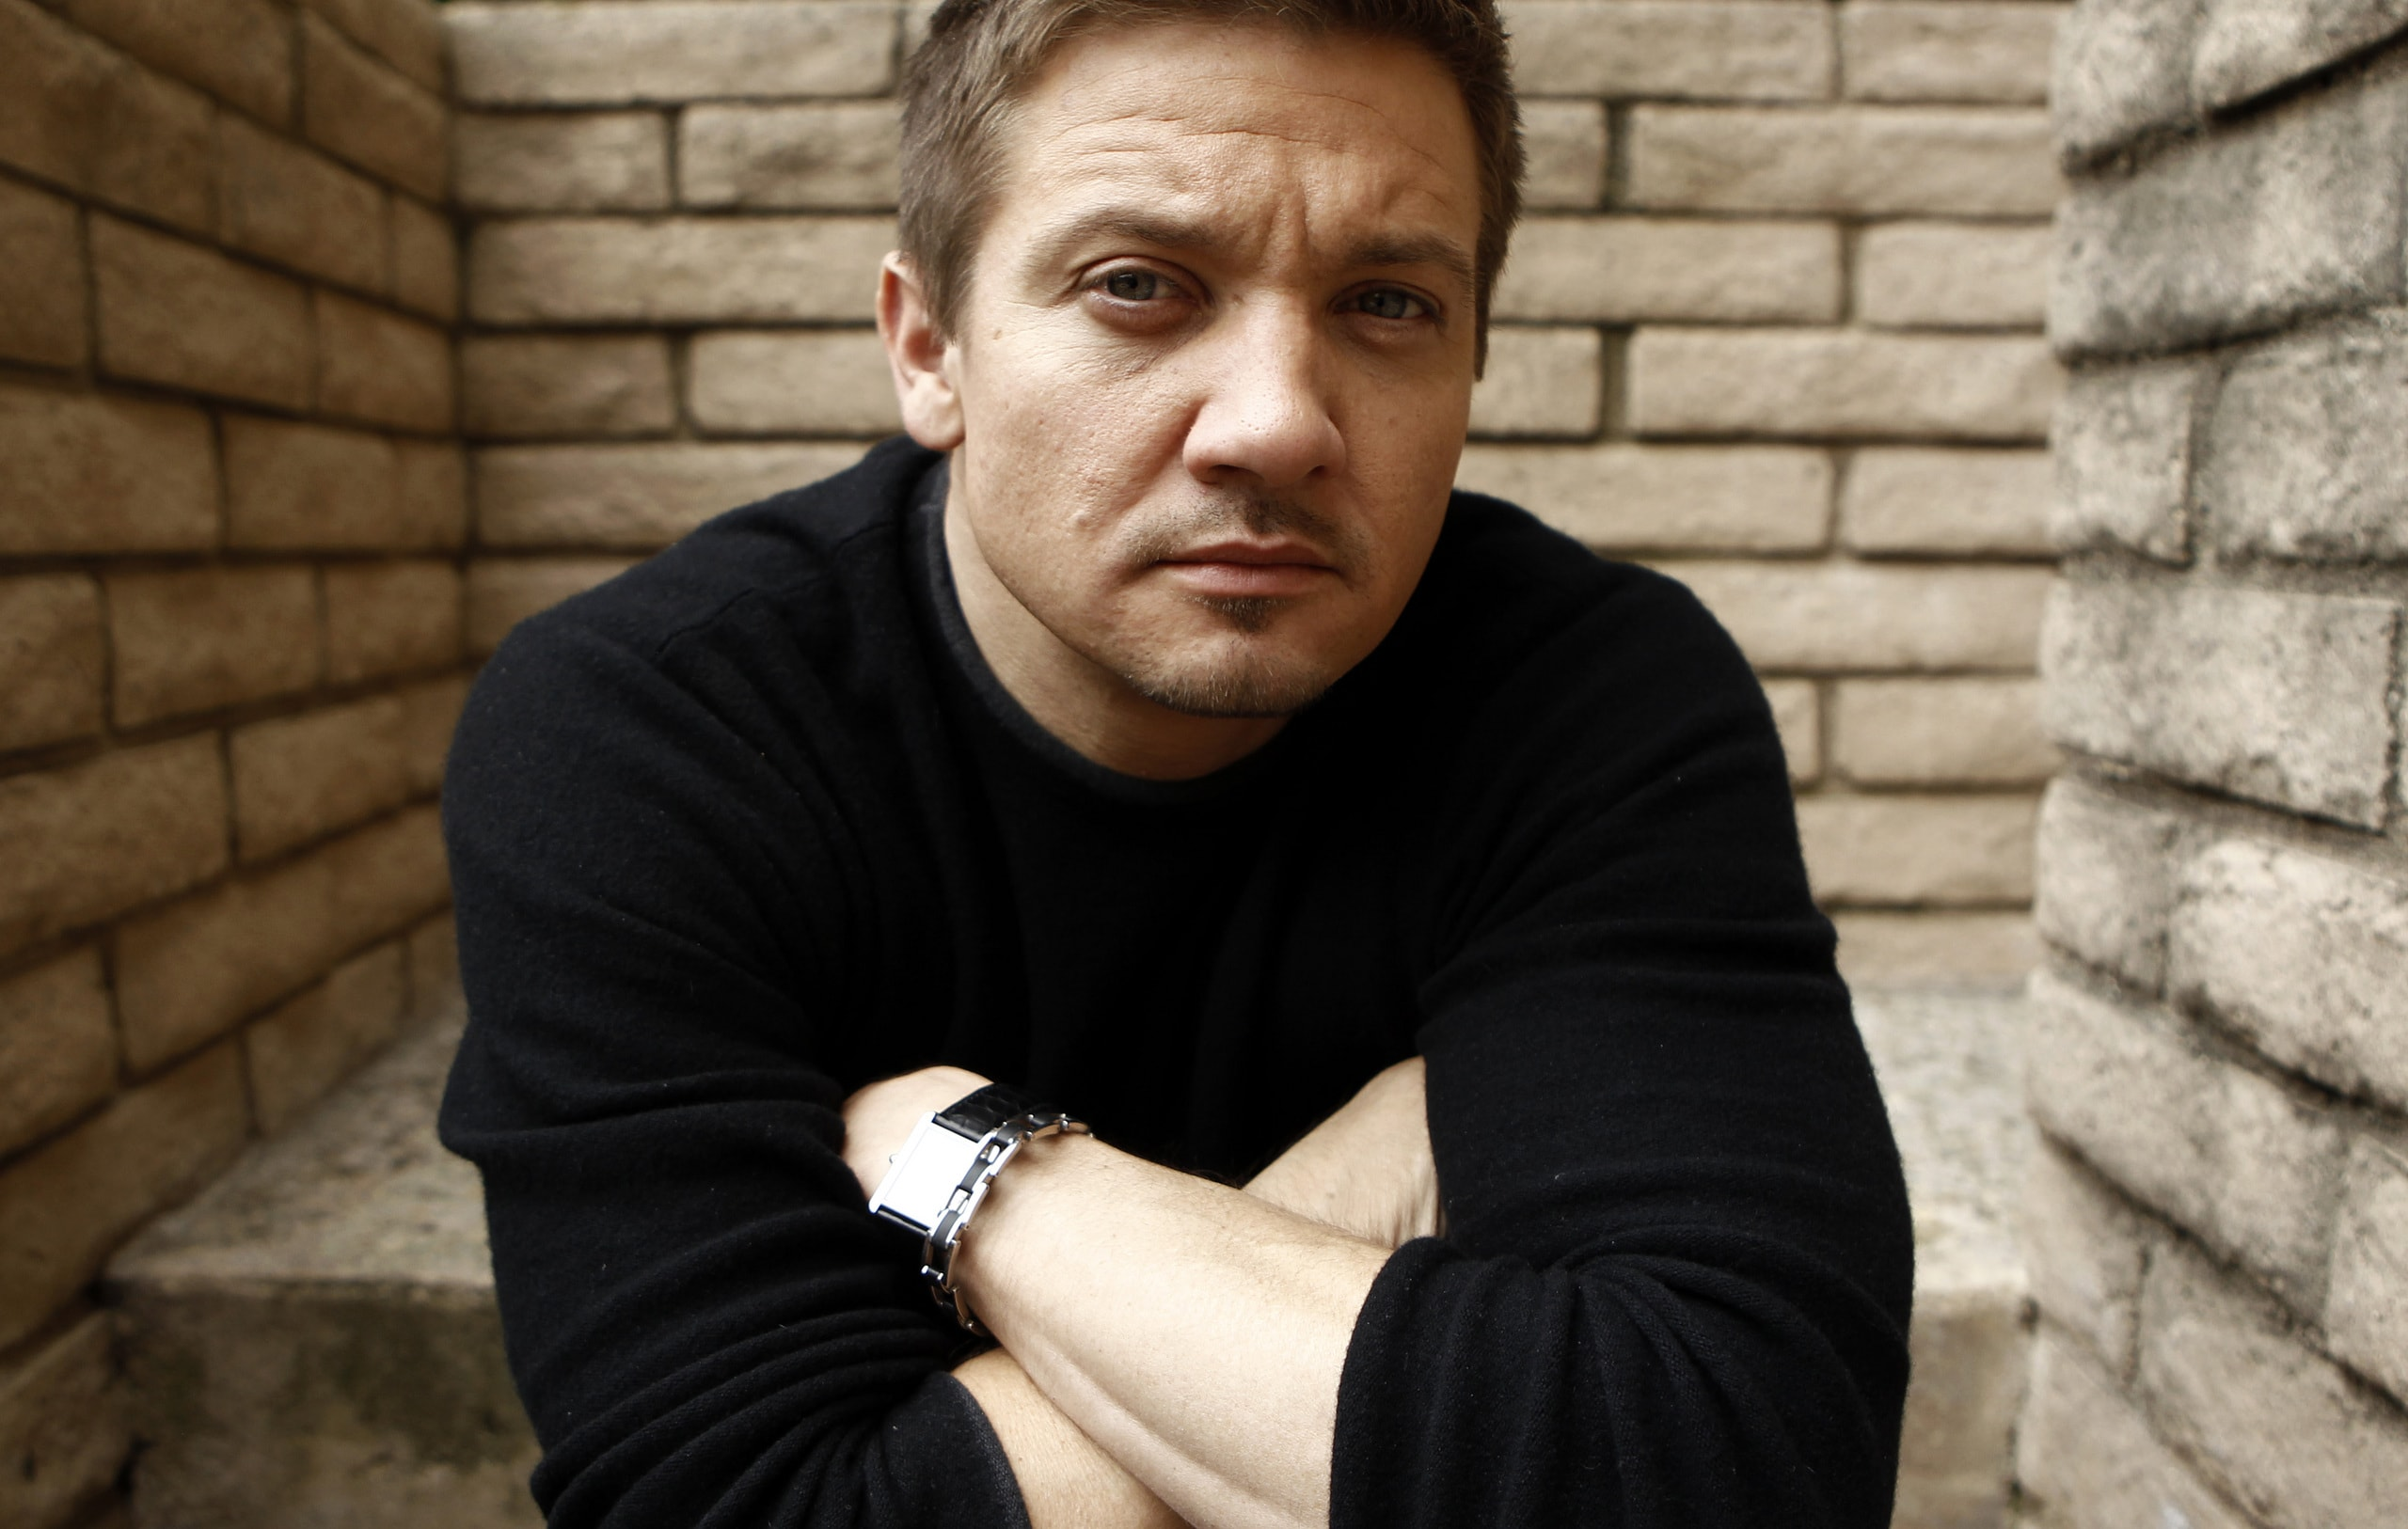 Jeremy Renner Wallpapers hd